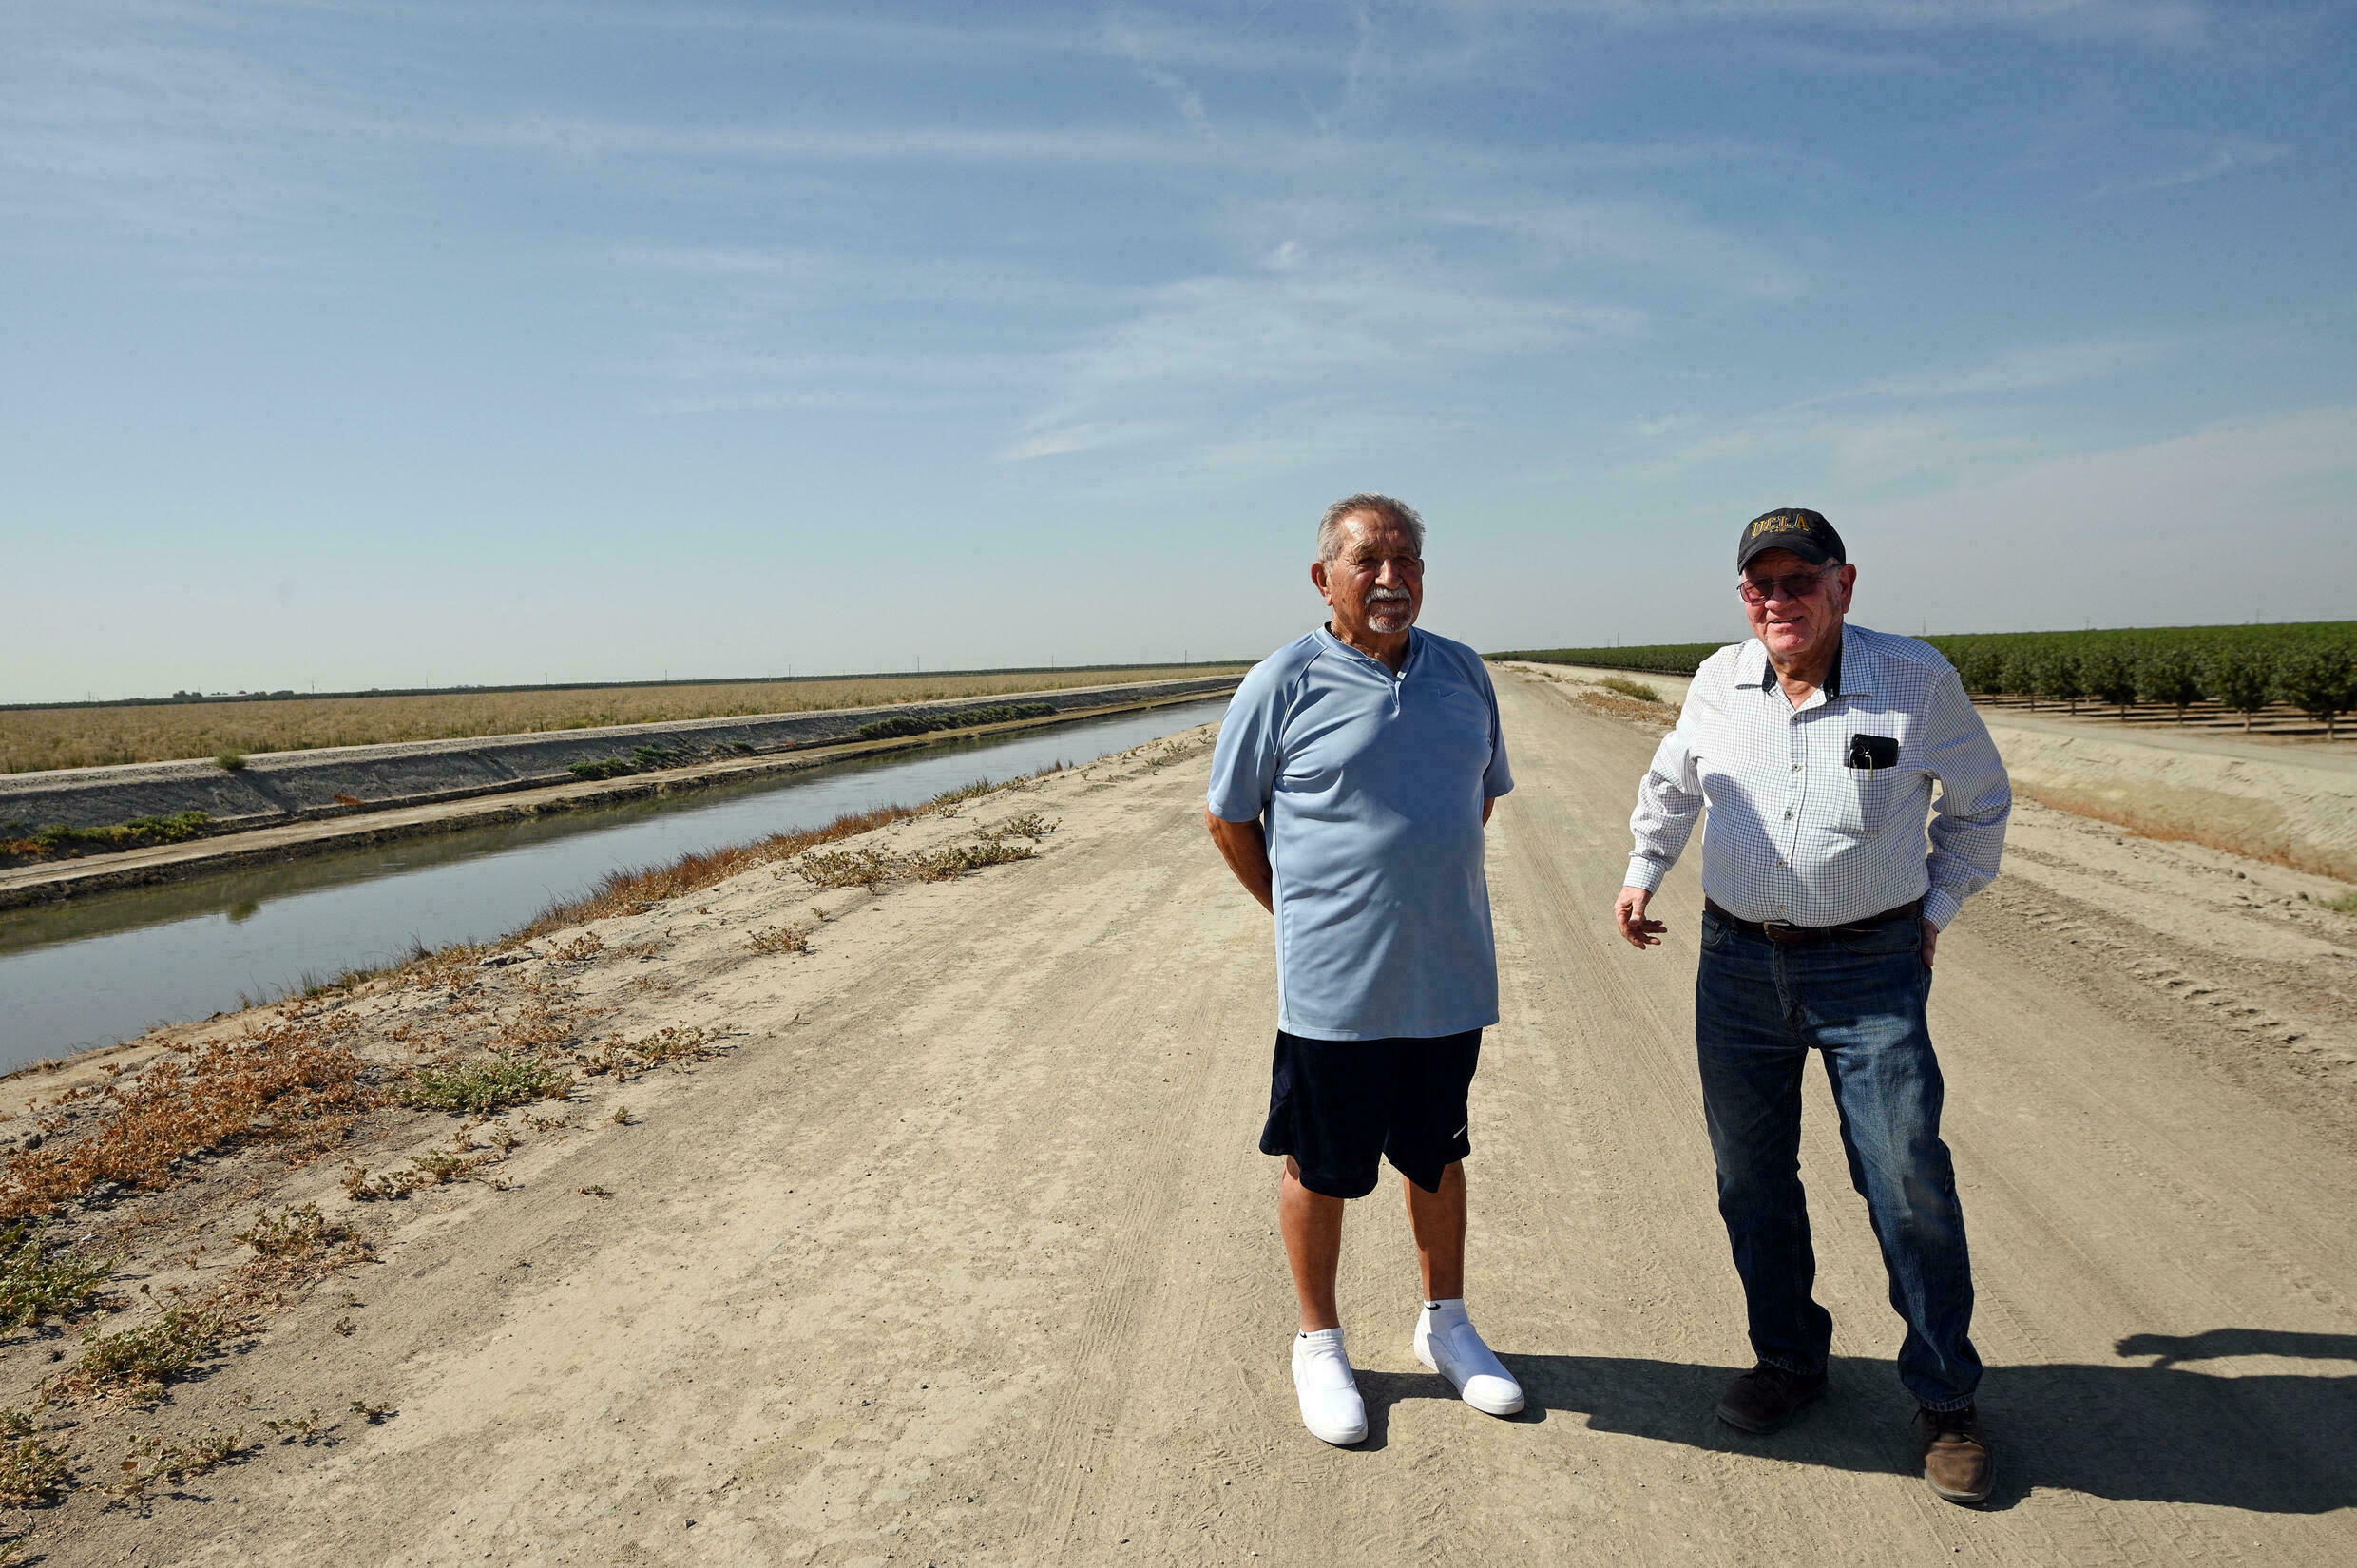 Raul Gomez (L) and Greg Ojeda, standing on July 23, 2021 near a levee in Corocoran, California which was raised in 2017 for fear of floods -- that have yet to come